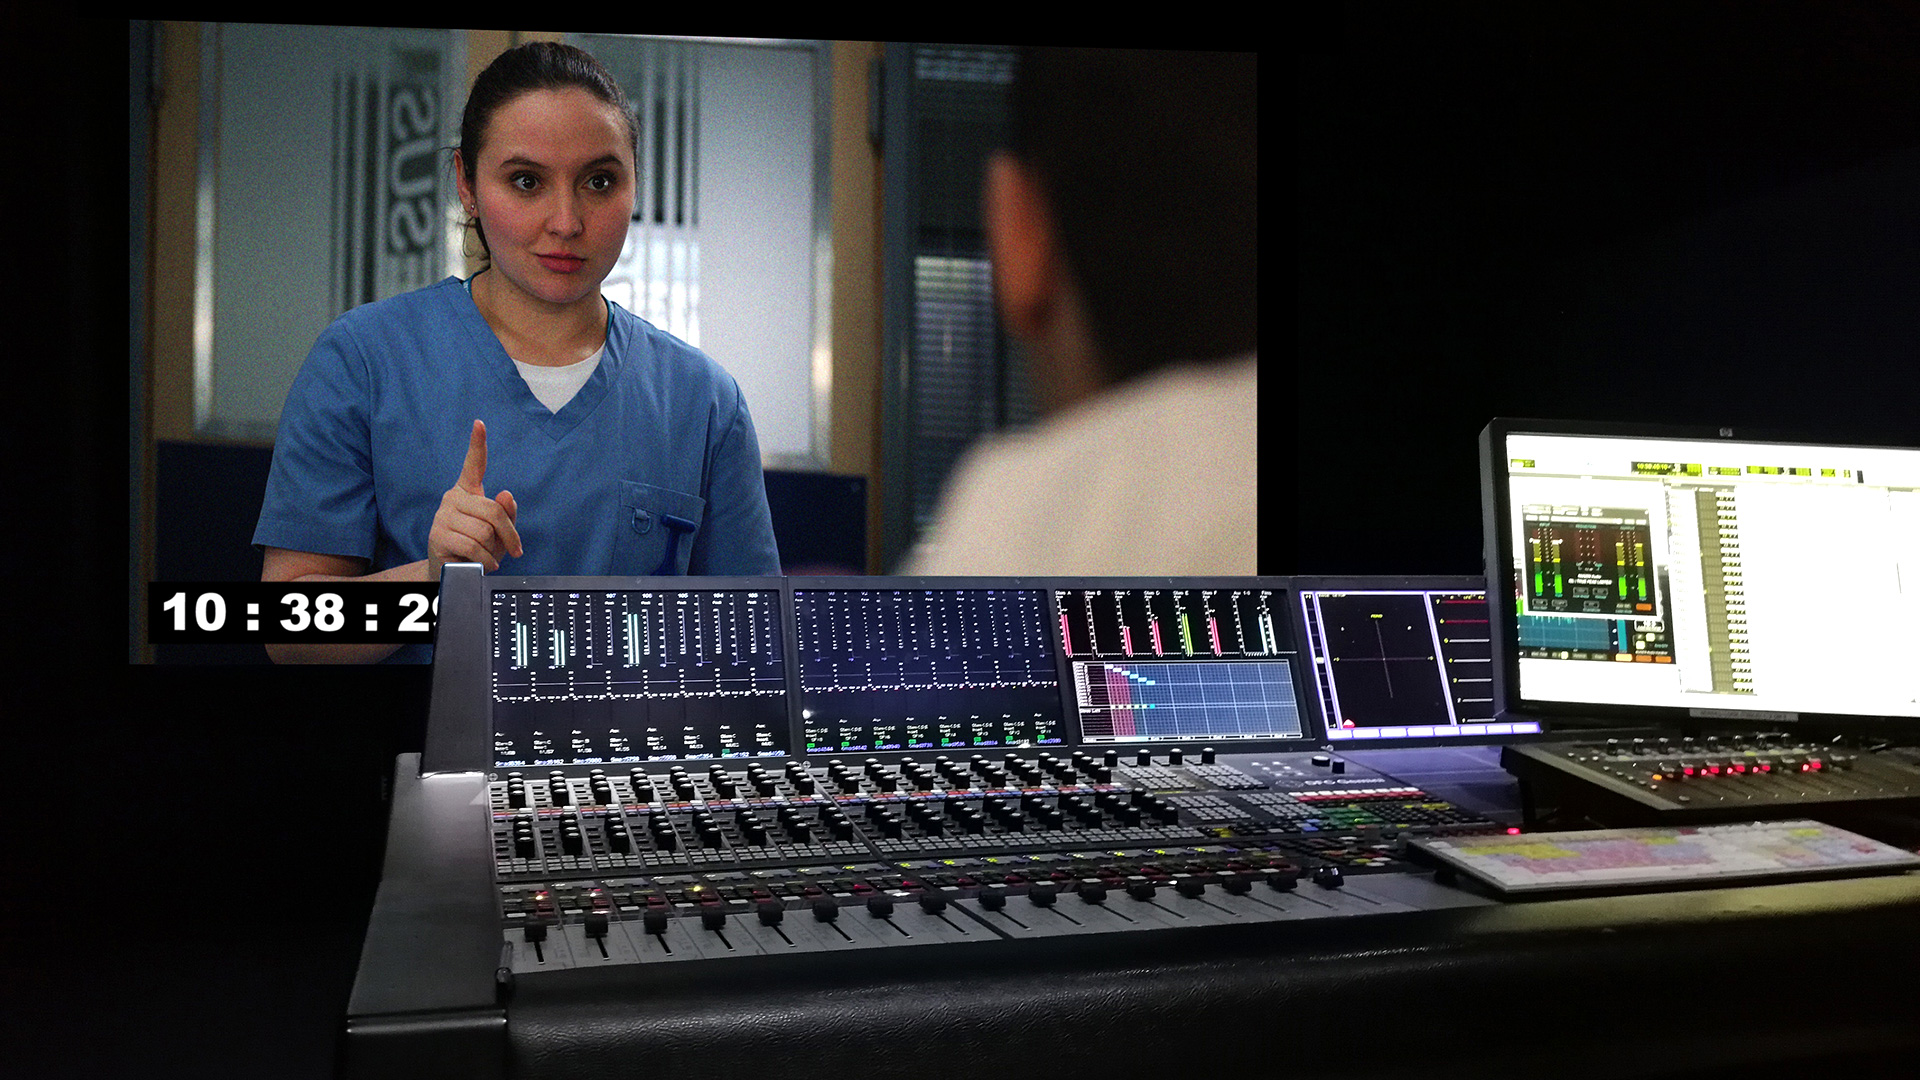 A mixing desk in an editing studio, with a scene from BBC's Casualty playing on a monitor